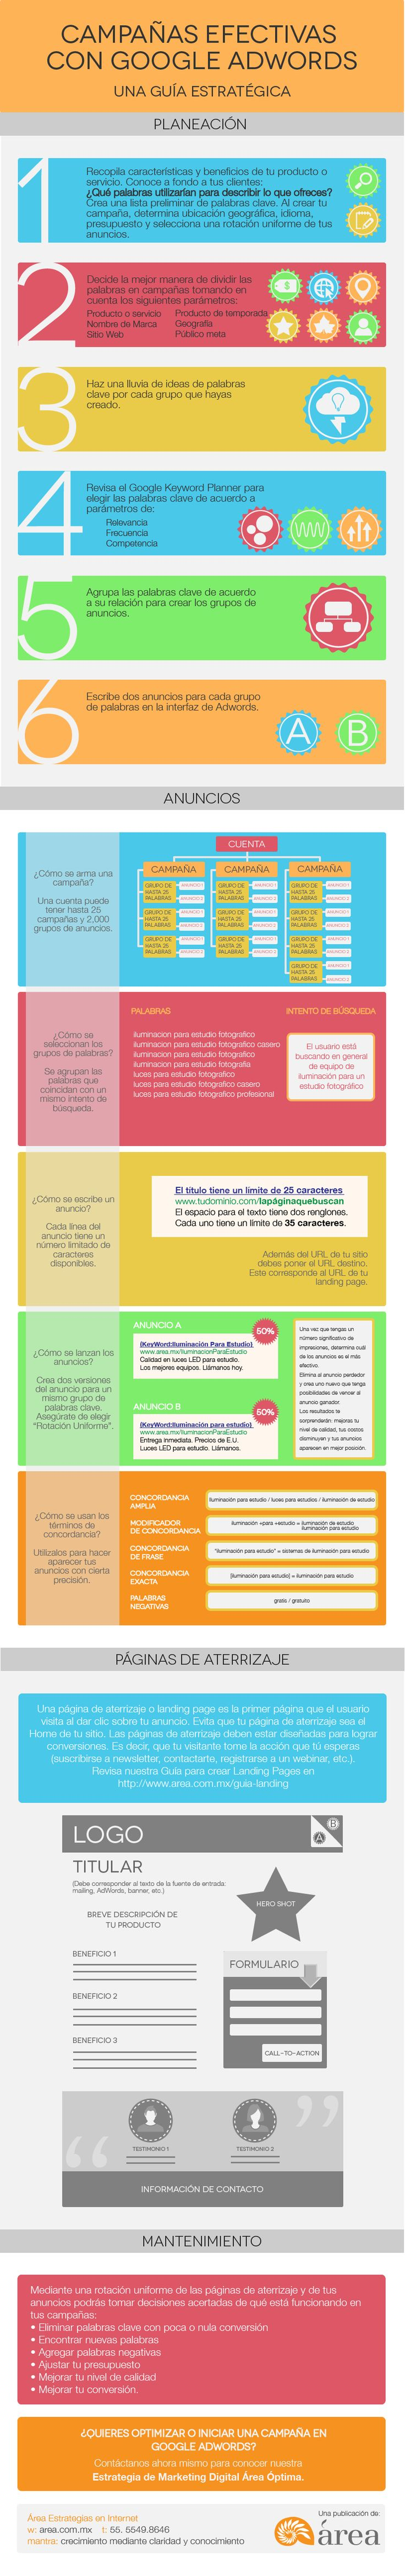 Campañas efectivas de Google #Adwords Vía: area.com.mx #infografia #infographic #marketing #MarketingOnline #SEM